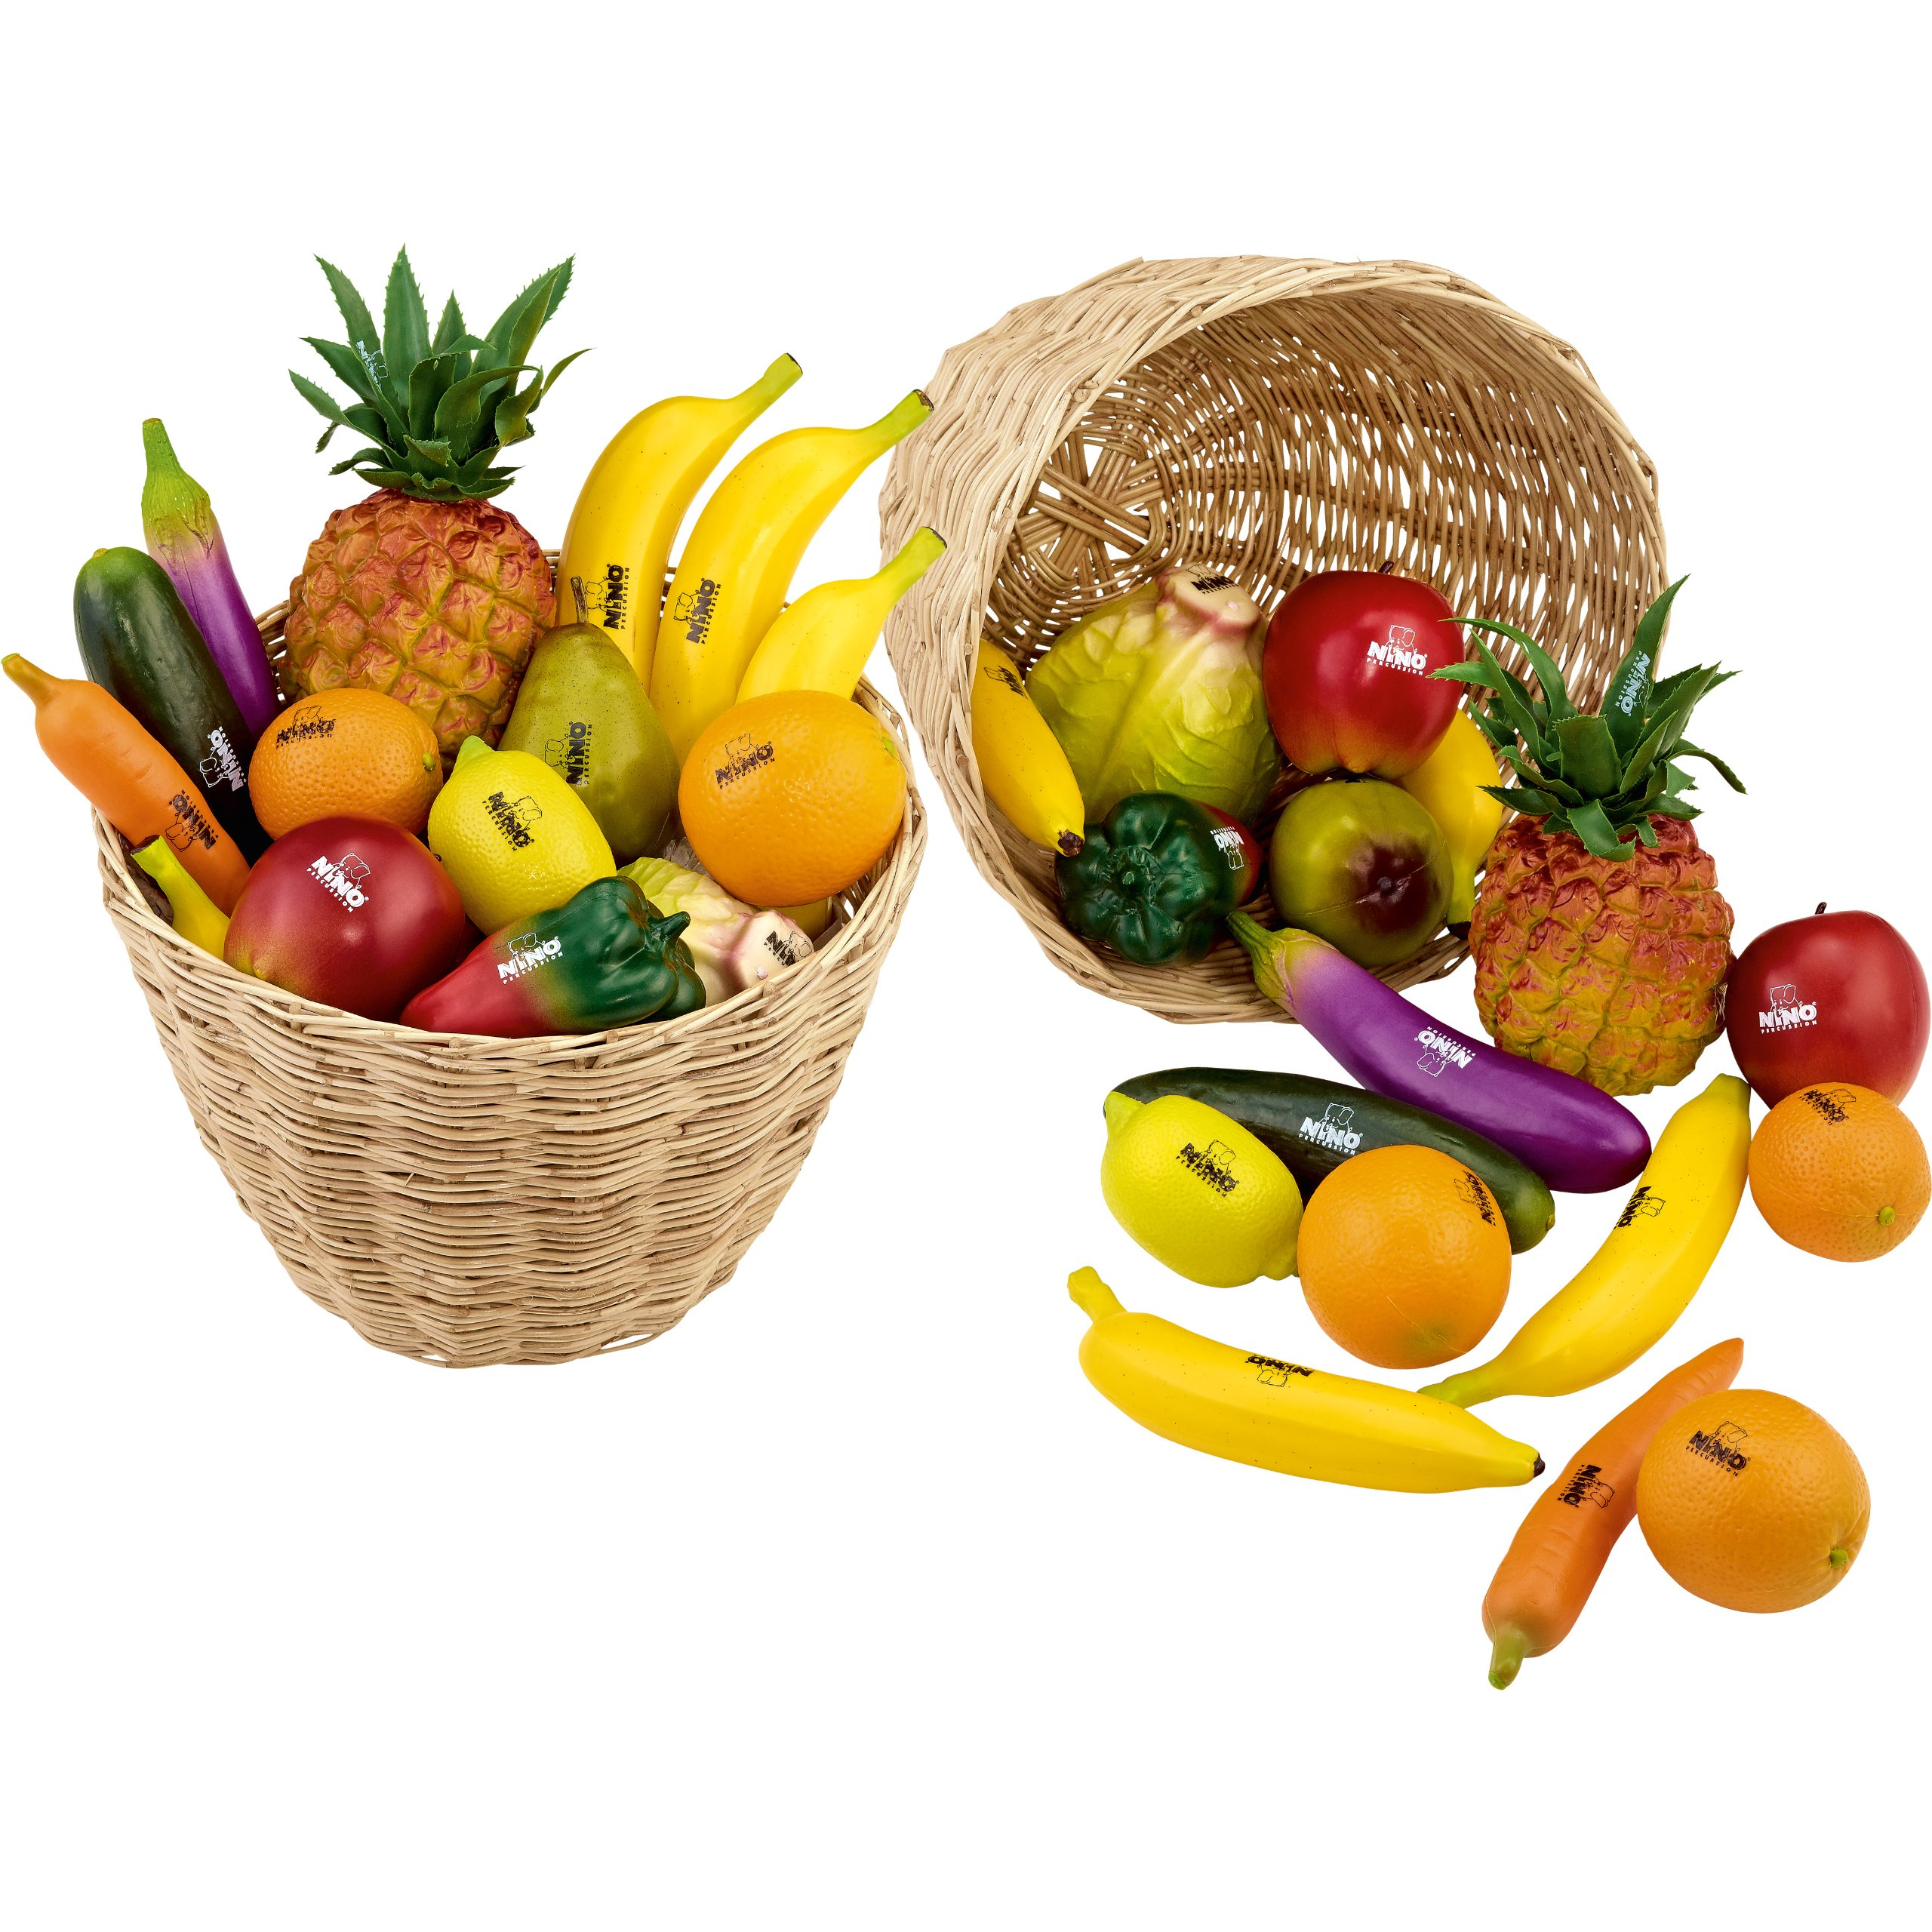 Nino Percussion VE36-NINO536 Plastic Fruit & Vegetable Shaker Assortment with Basket, 36 Pieces by Nino Percussion